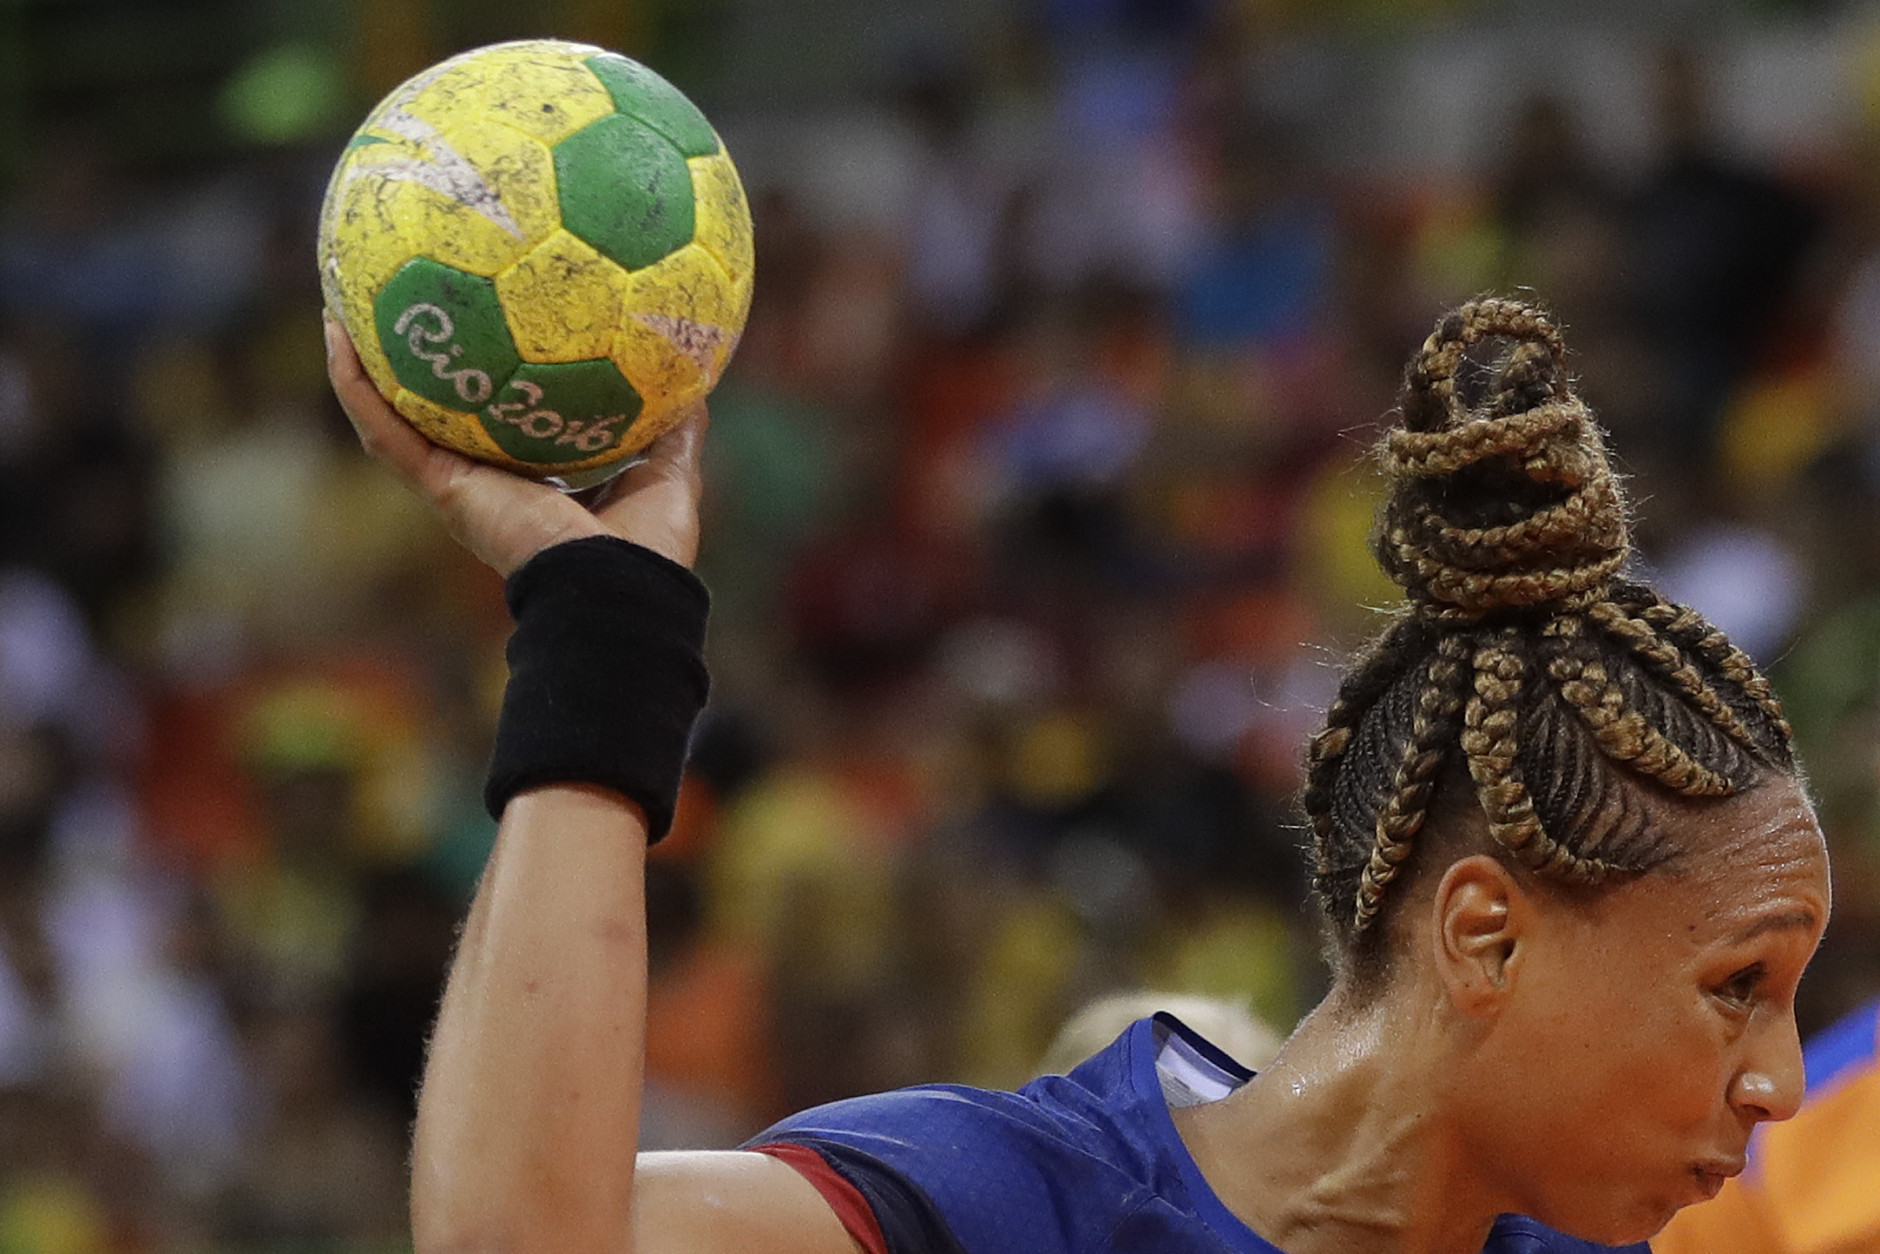 France's Beatrice Edwige tries to score during the women's preliminary handball match between Netherlands and France at the 2016 Summer Olympics in Rio de Janeiro, Brazil, Saturday, Aug. 6, 2016. (AP Photo/Matthias Schrader)